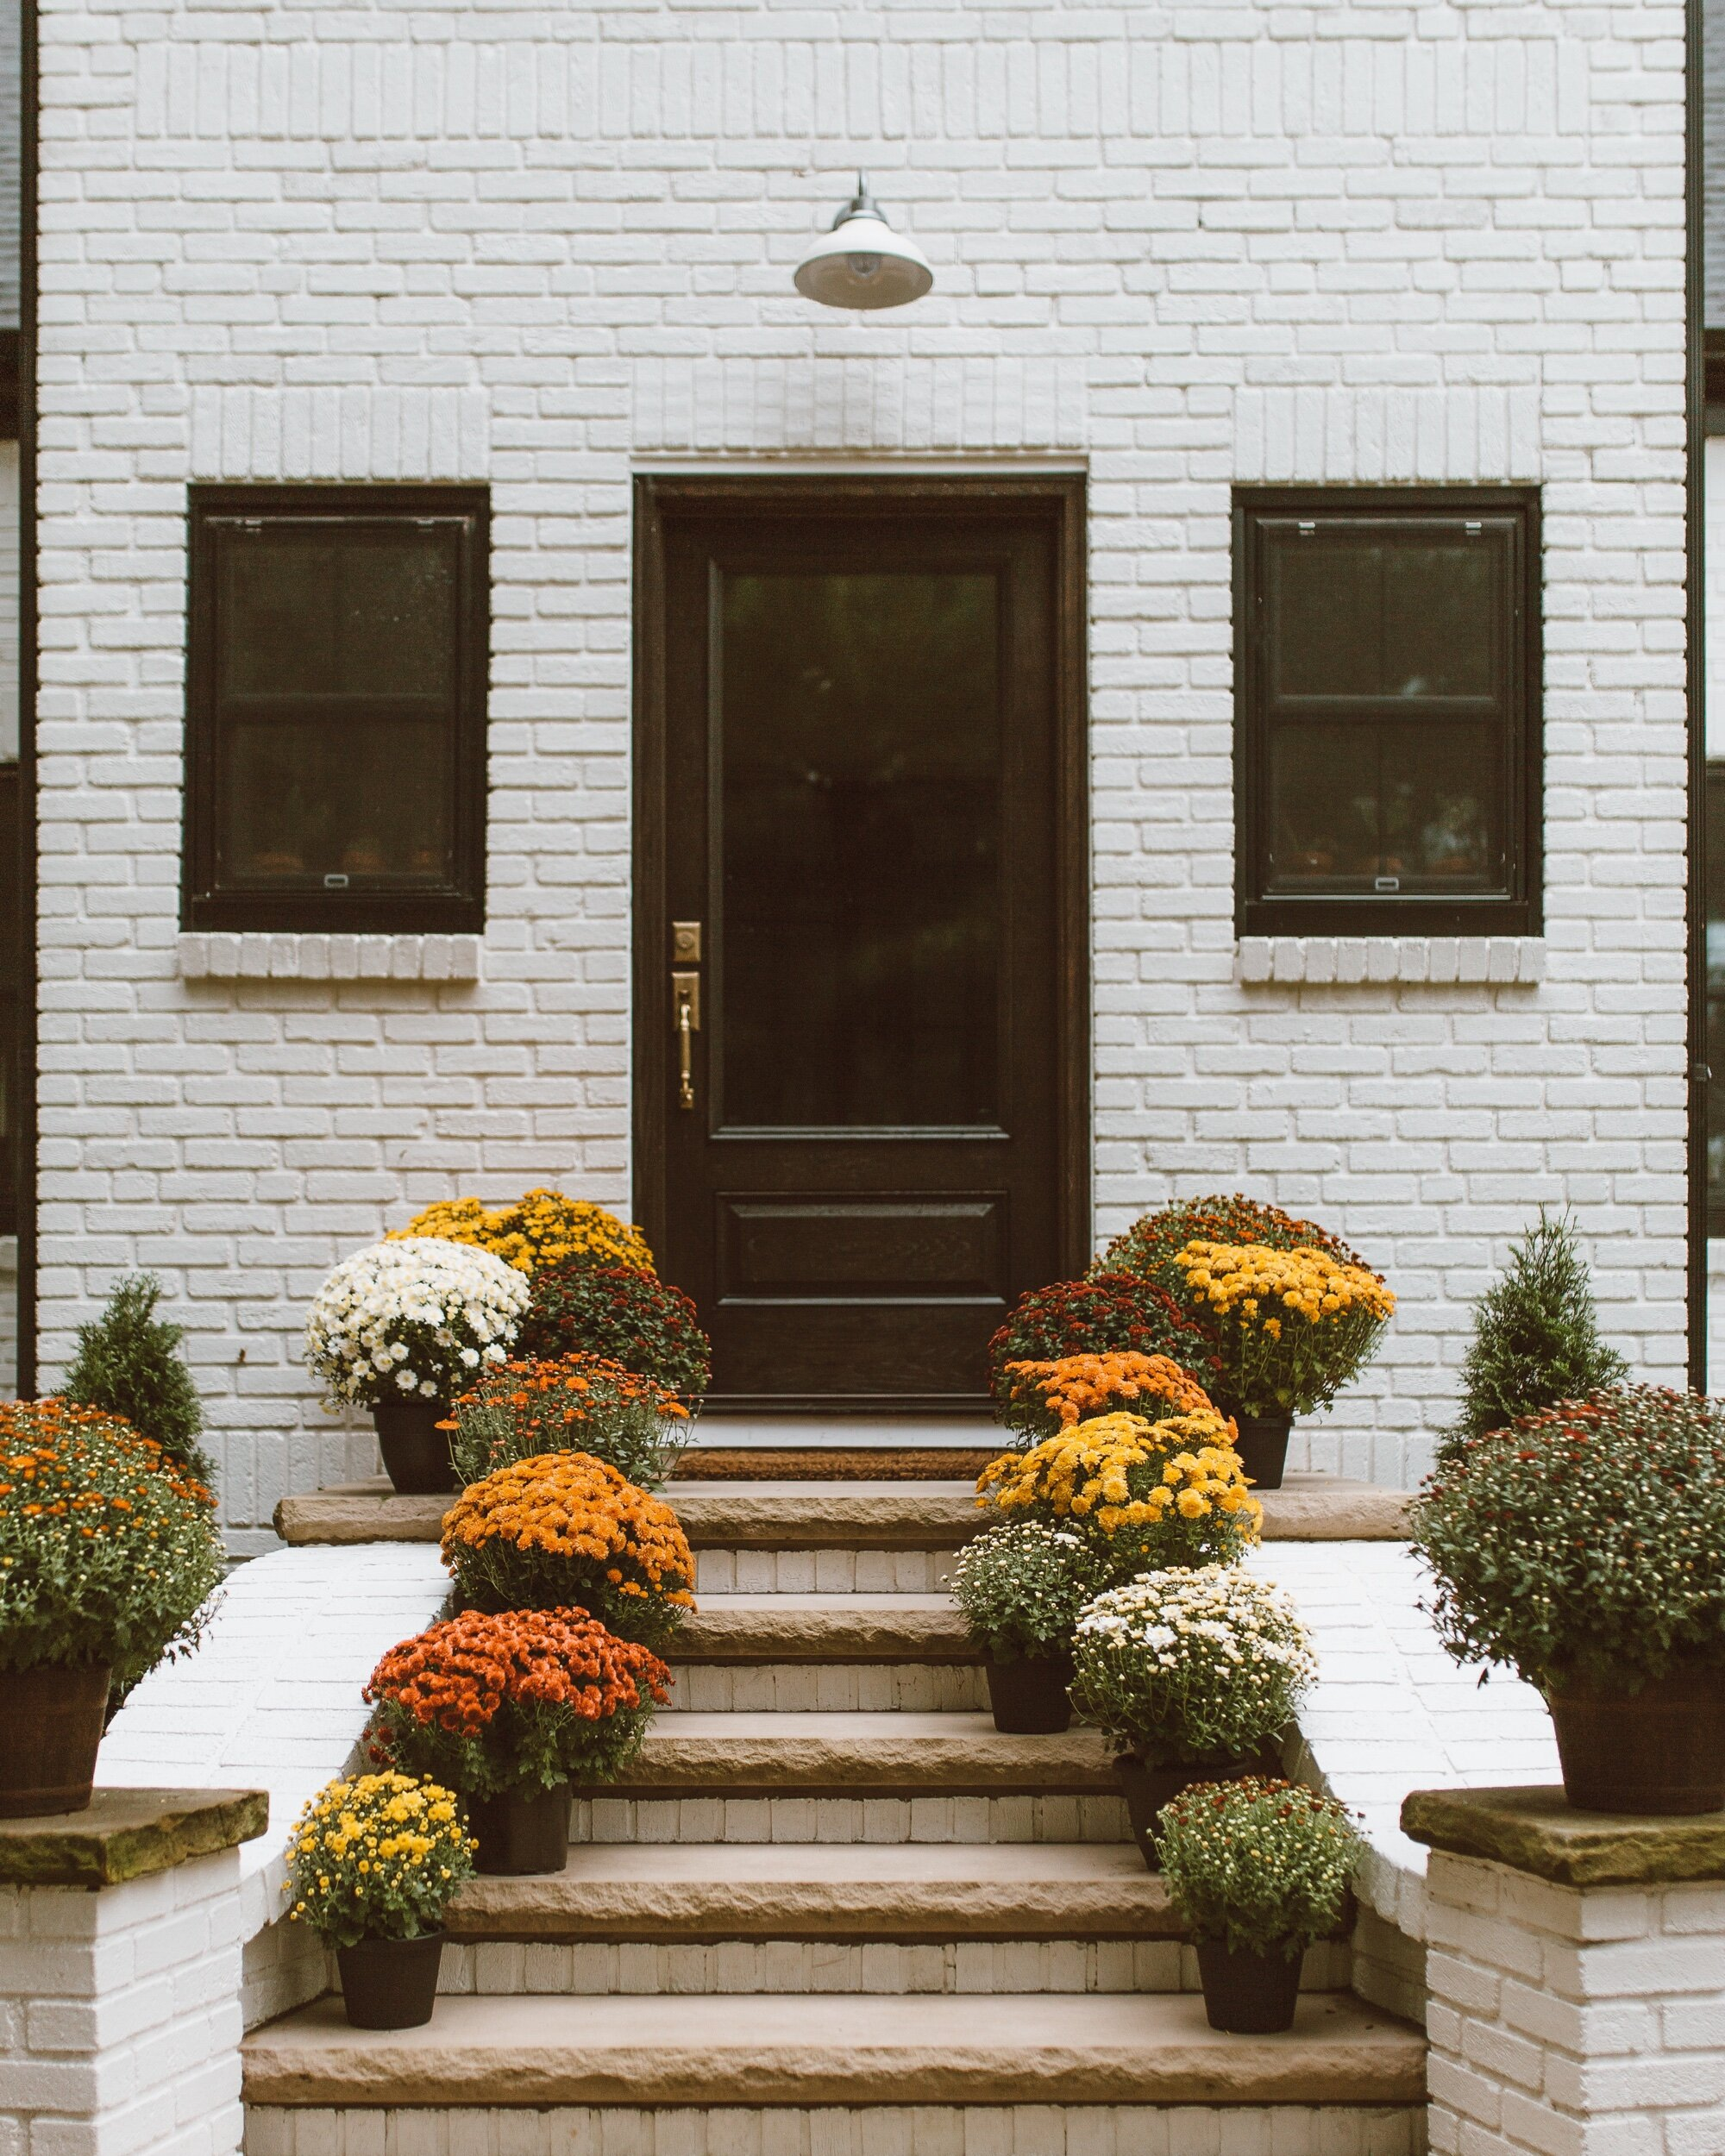 forthehome-how-to-care-for-fall-mums-06.jpeg